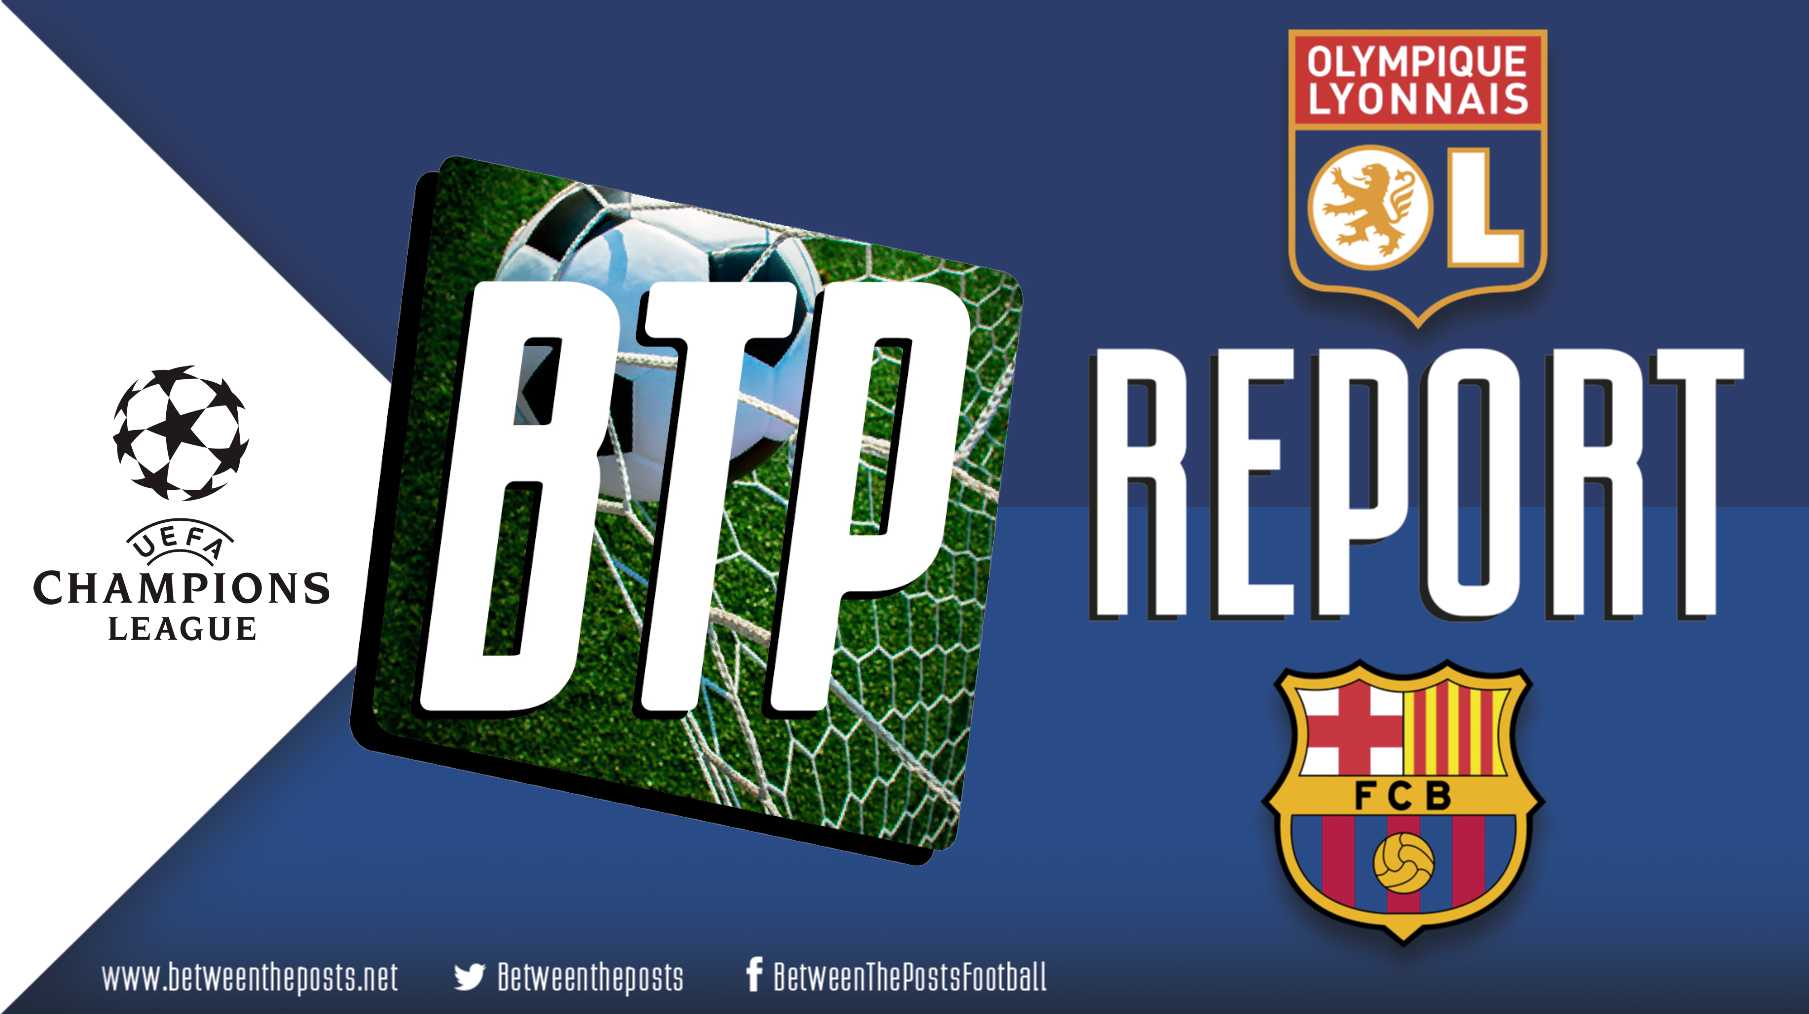 Tactical analysis Olympique Lyonnais - Barcelona 0-0 Champions League